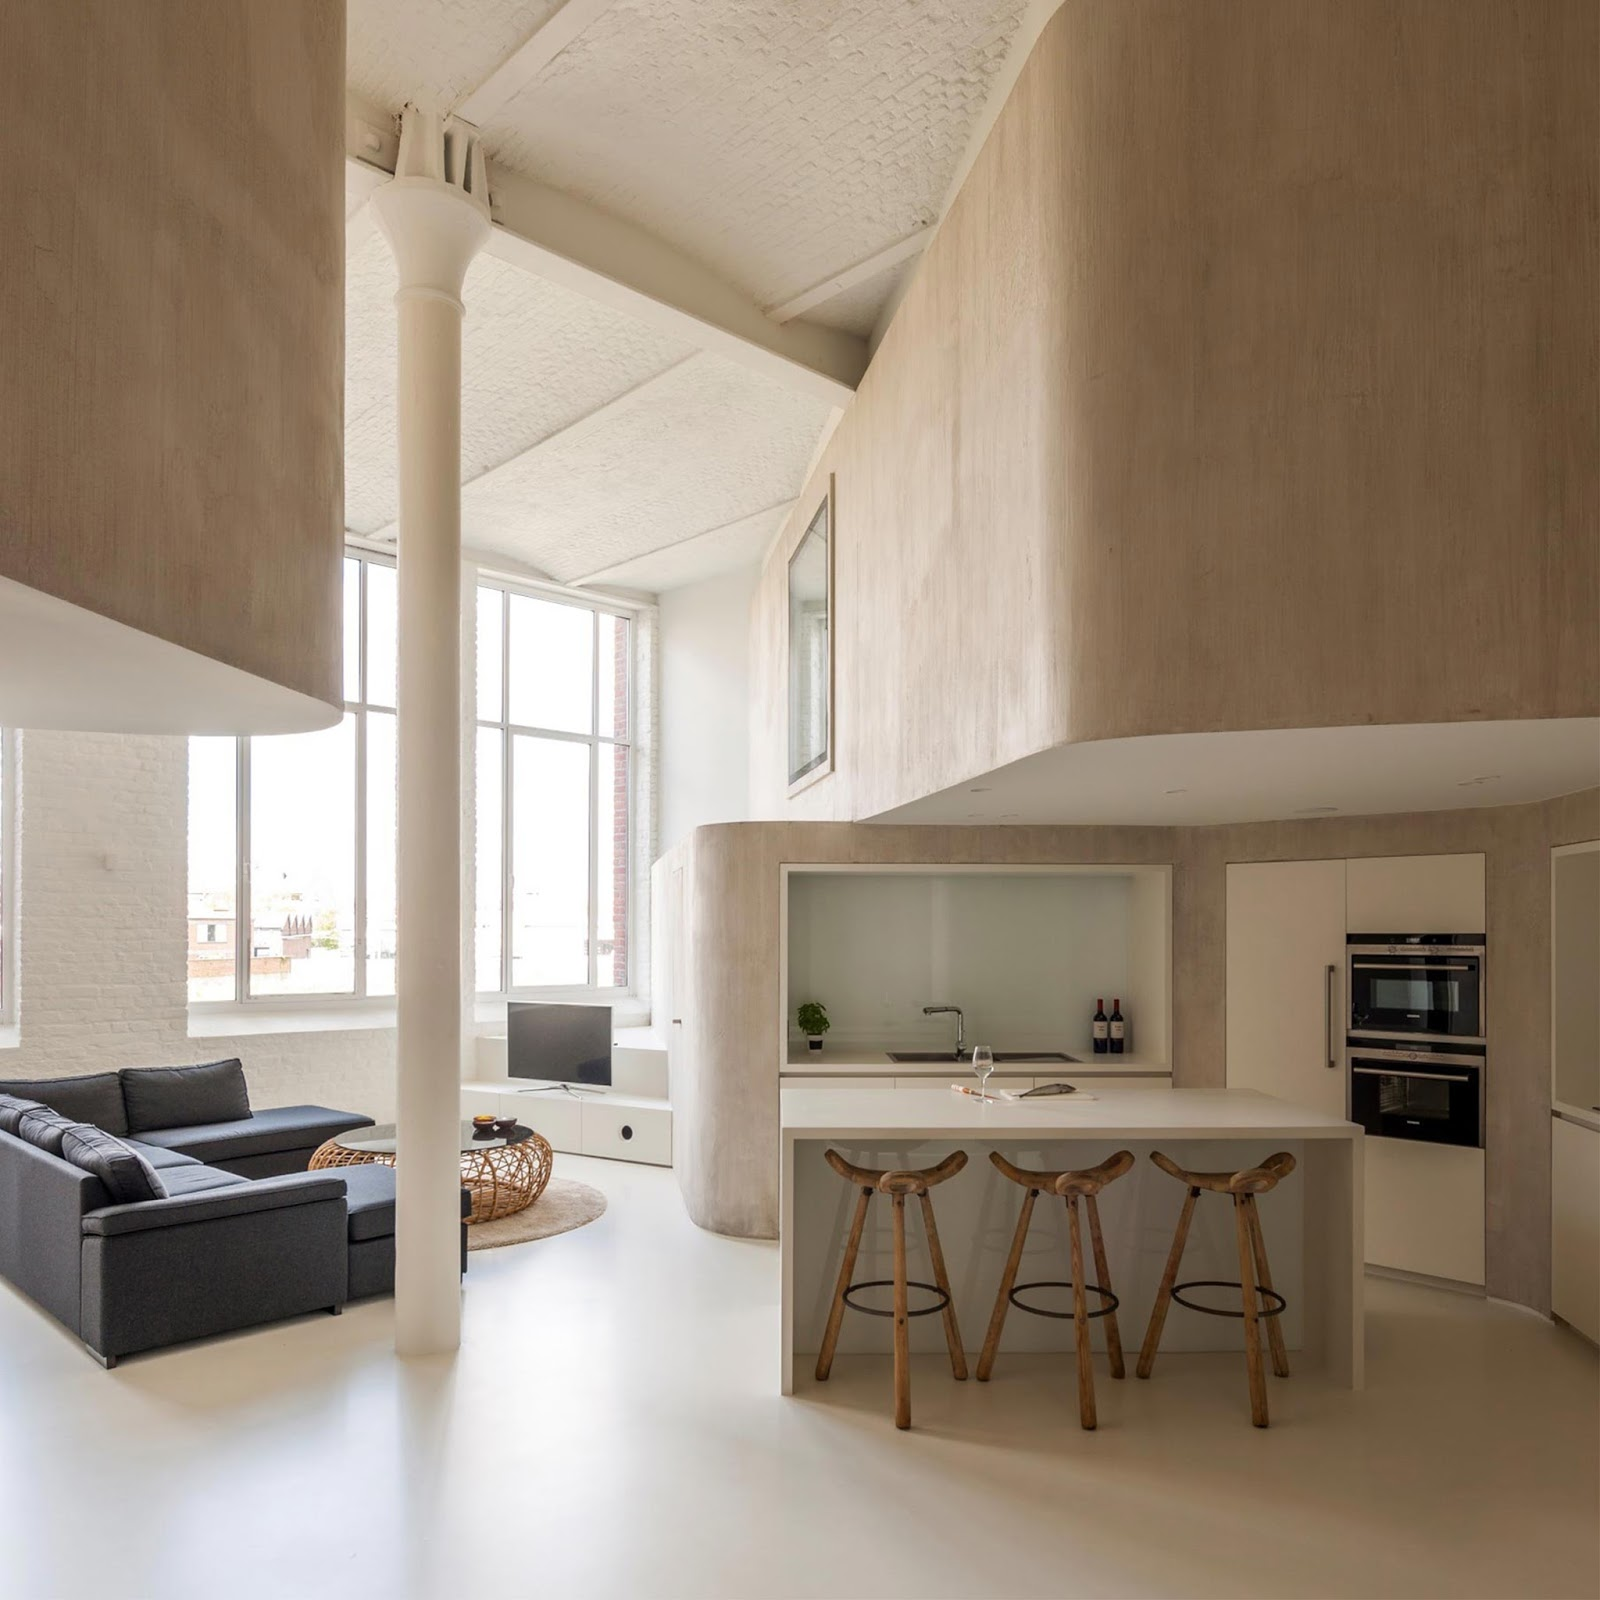 Casa con pareti interne ondulate in belgio by graux & baeyens ...